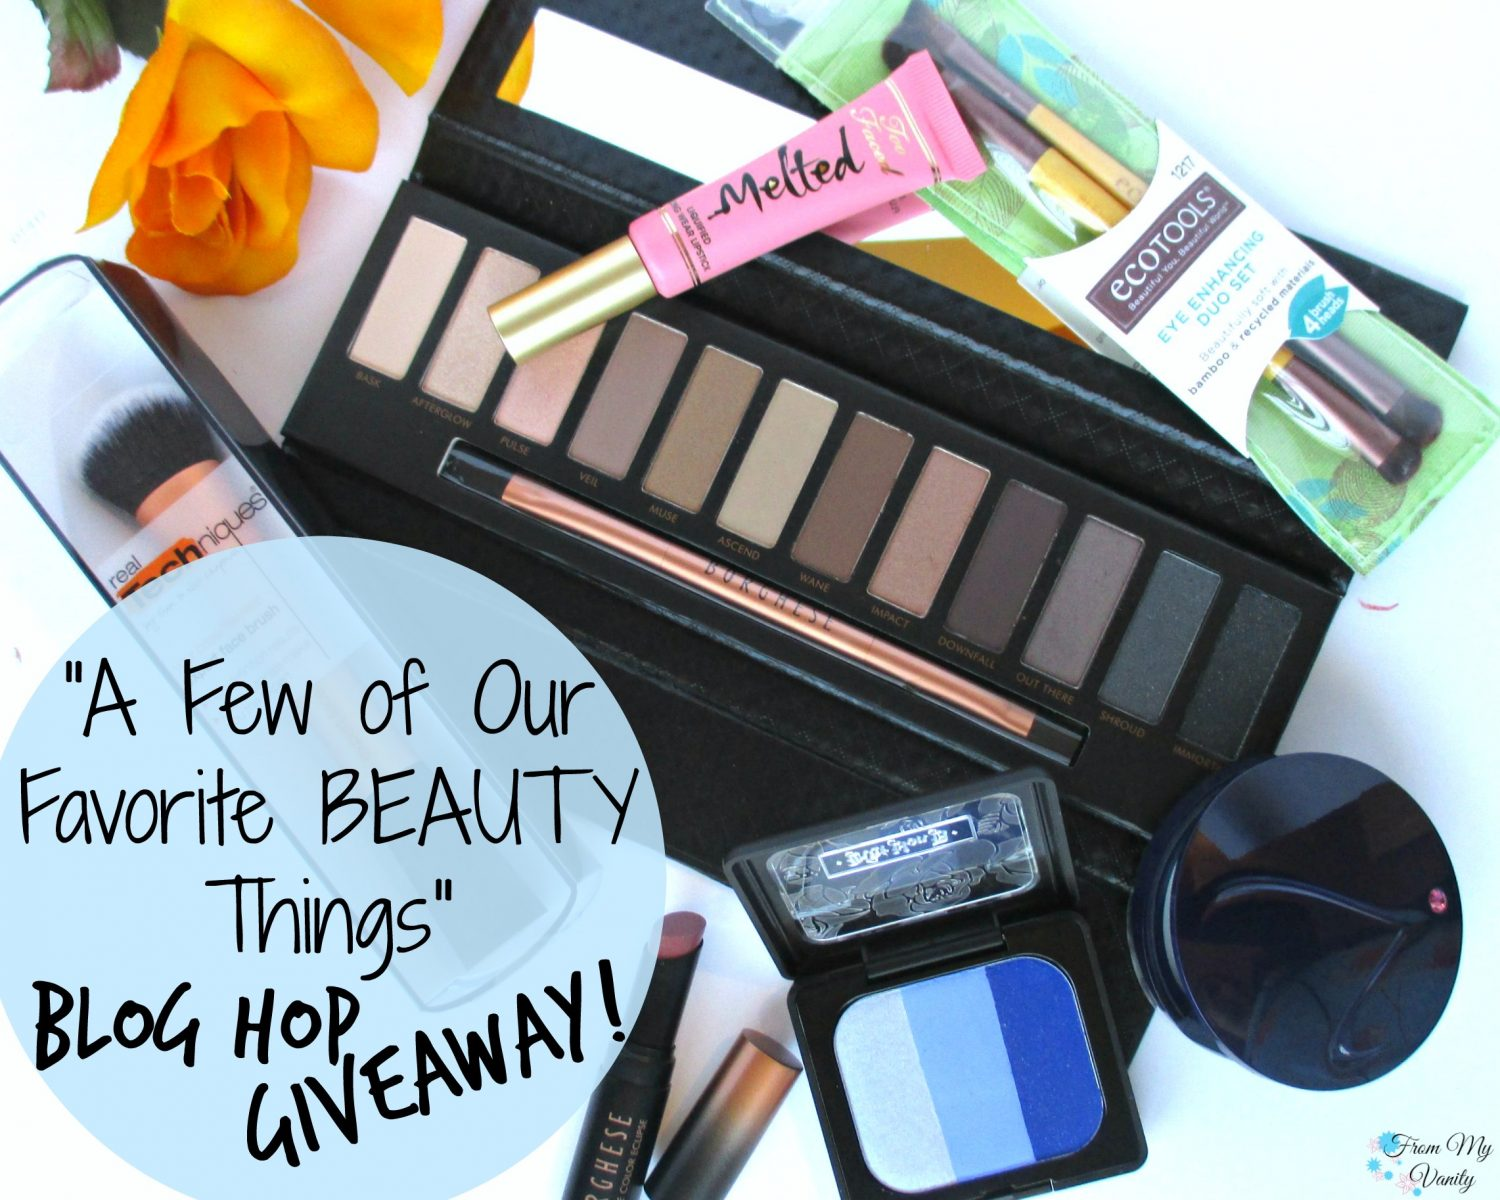 from-my-vanity-blog-hop-giveaway-header